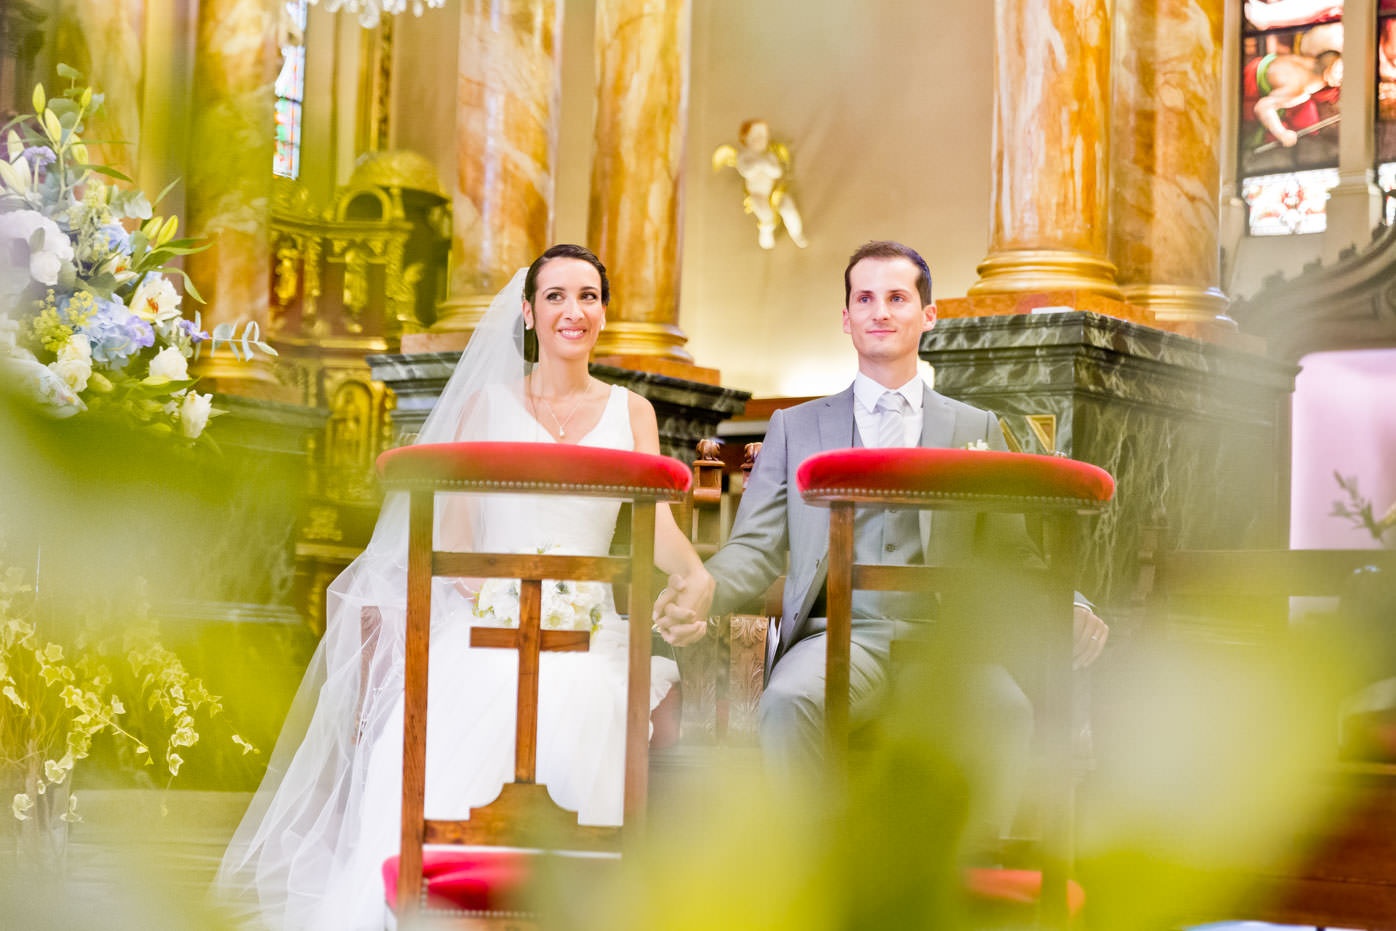 Photographe_Monaco_Monte_Carlo_Mariage_Wedding_25